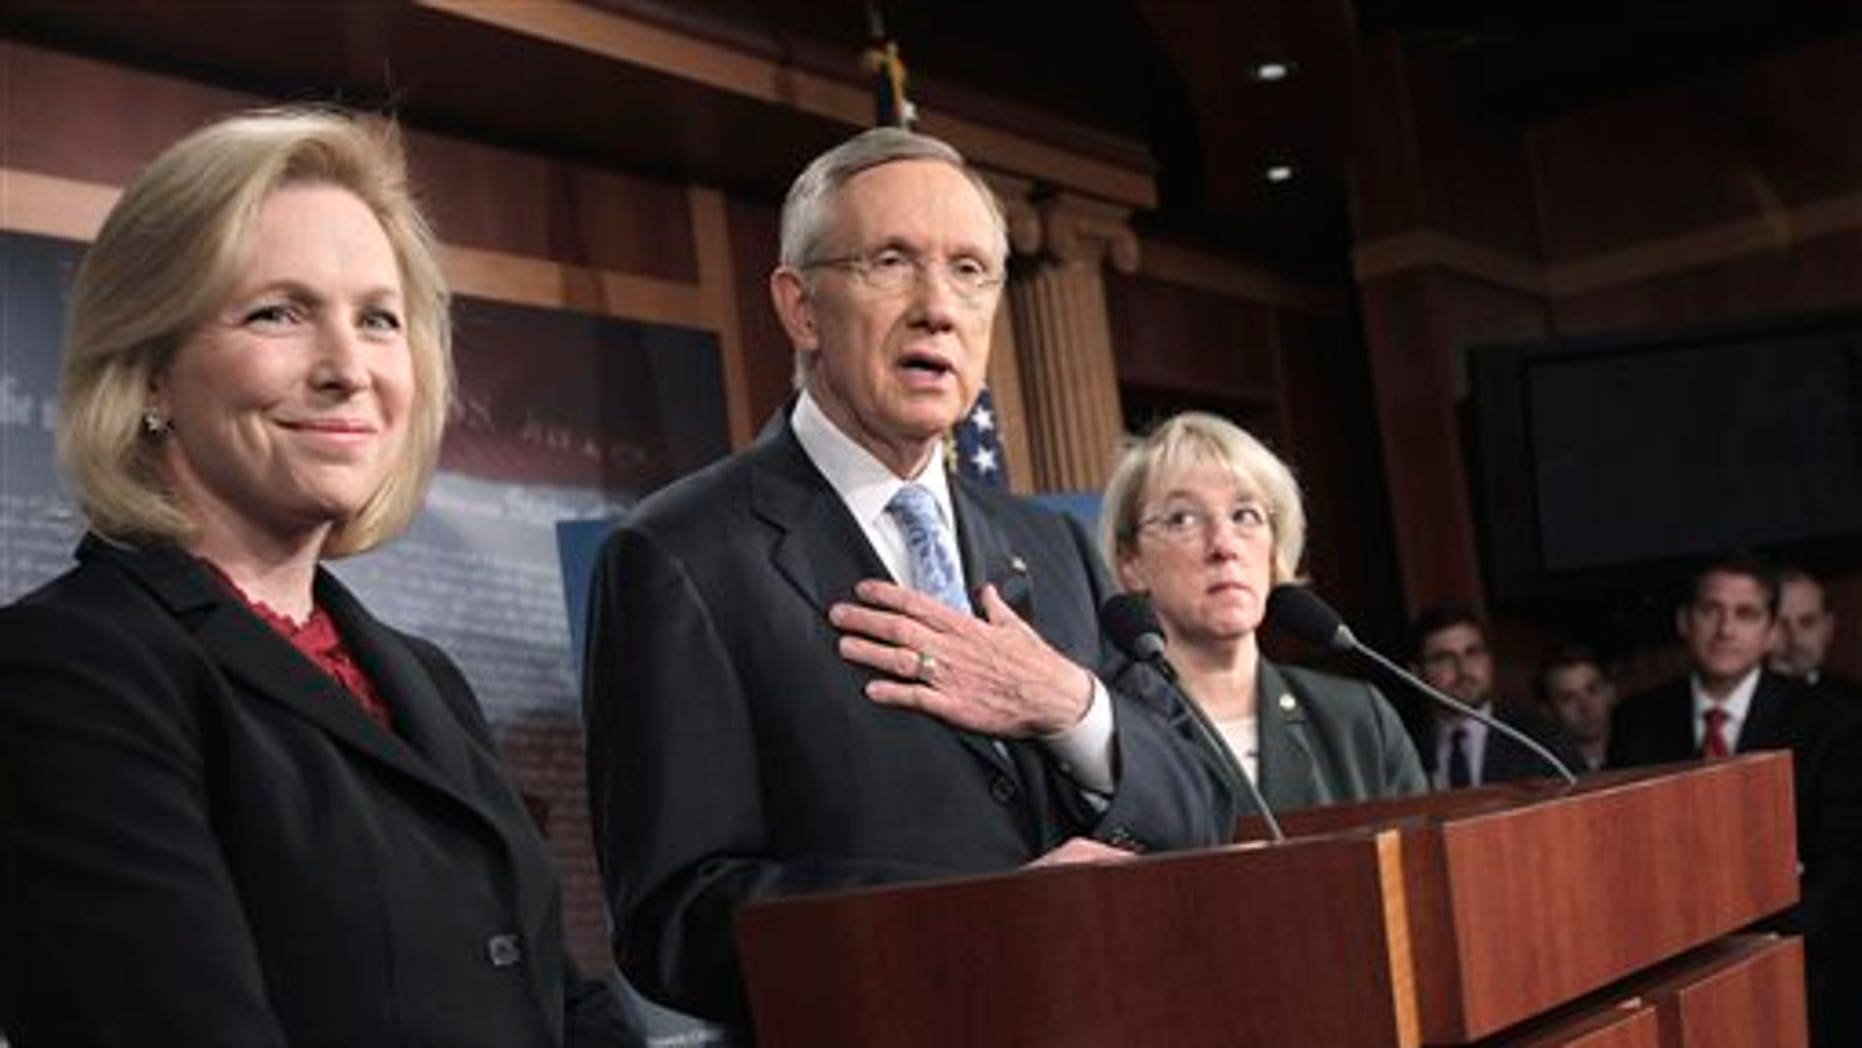 May 25: Senate Majority Leader Harry Reid of Nev., accompanied by Sen. Kirsten Gillibrand, D-N.Y., left, and Sen. Patty Murray, D-Wash., speaks to reporters on Capitol Hill in Washington. (AP)